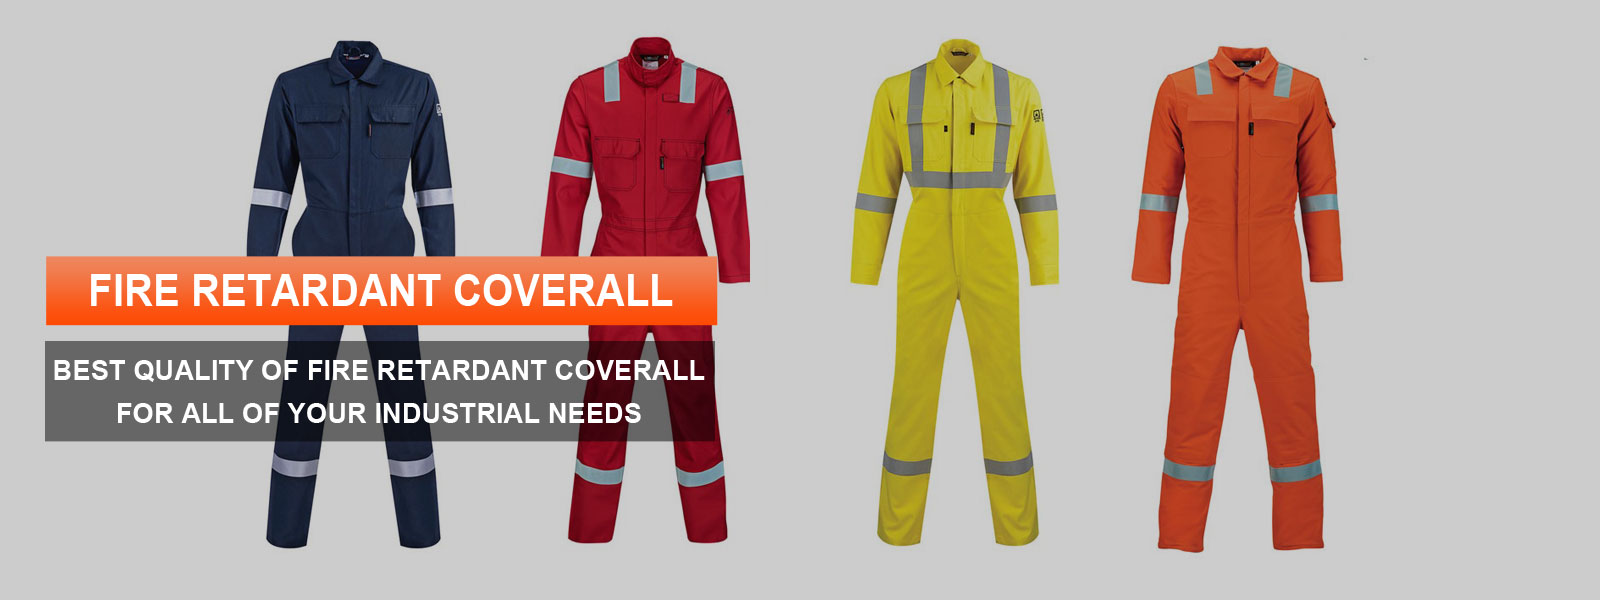 Fire Retardant Coverall Manufacturers in Angola